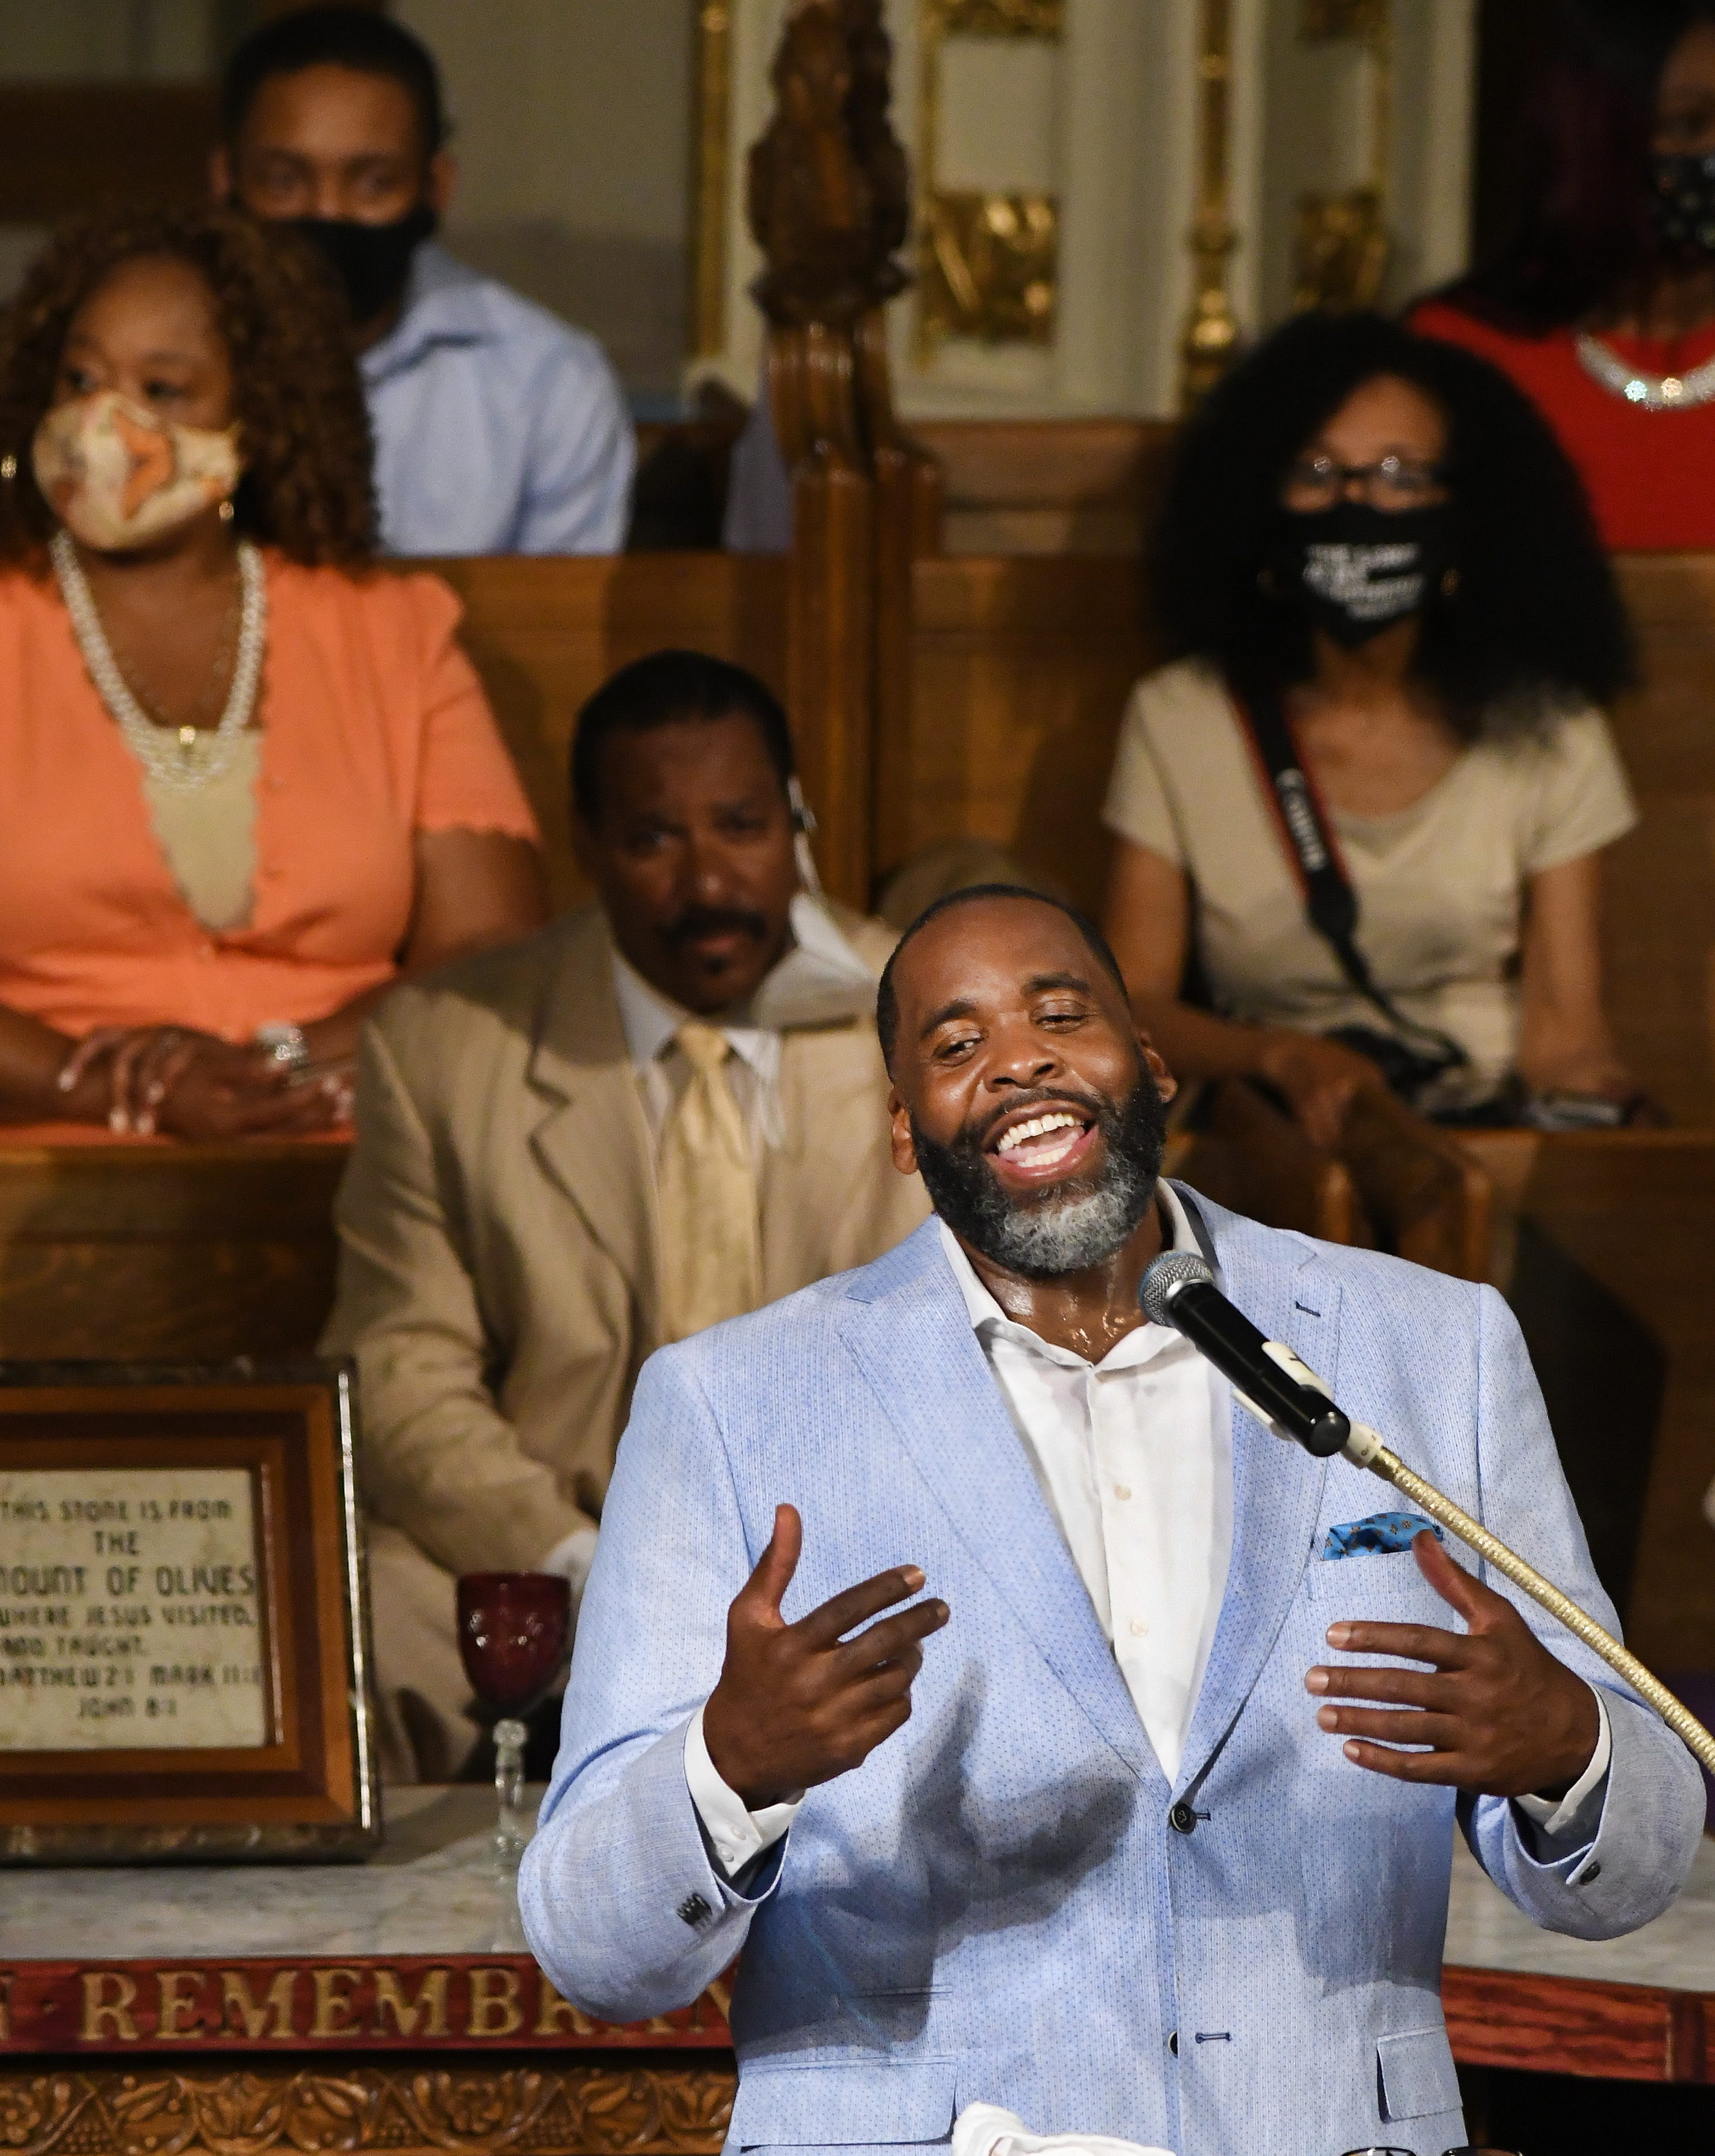 'The one who came back': Ex-Mayor Kwame Kilpatrick returns to Detroit to preach at Historic Little Rock Baptist Church